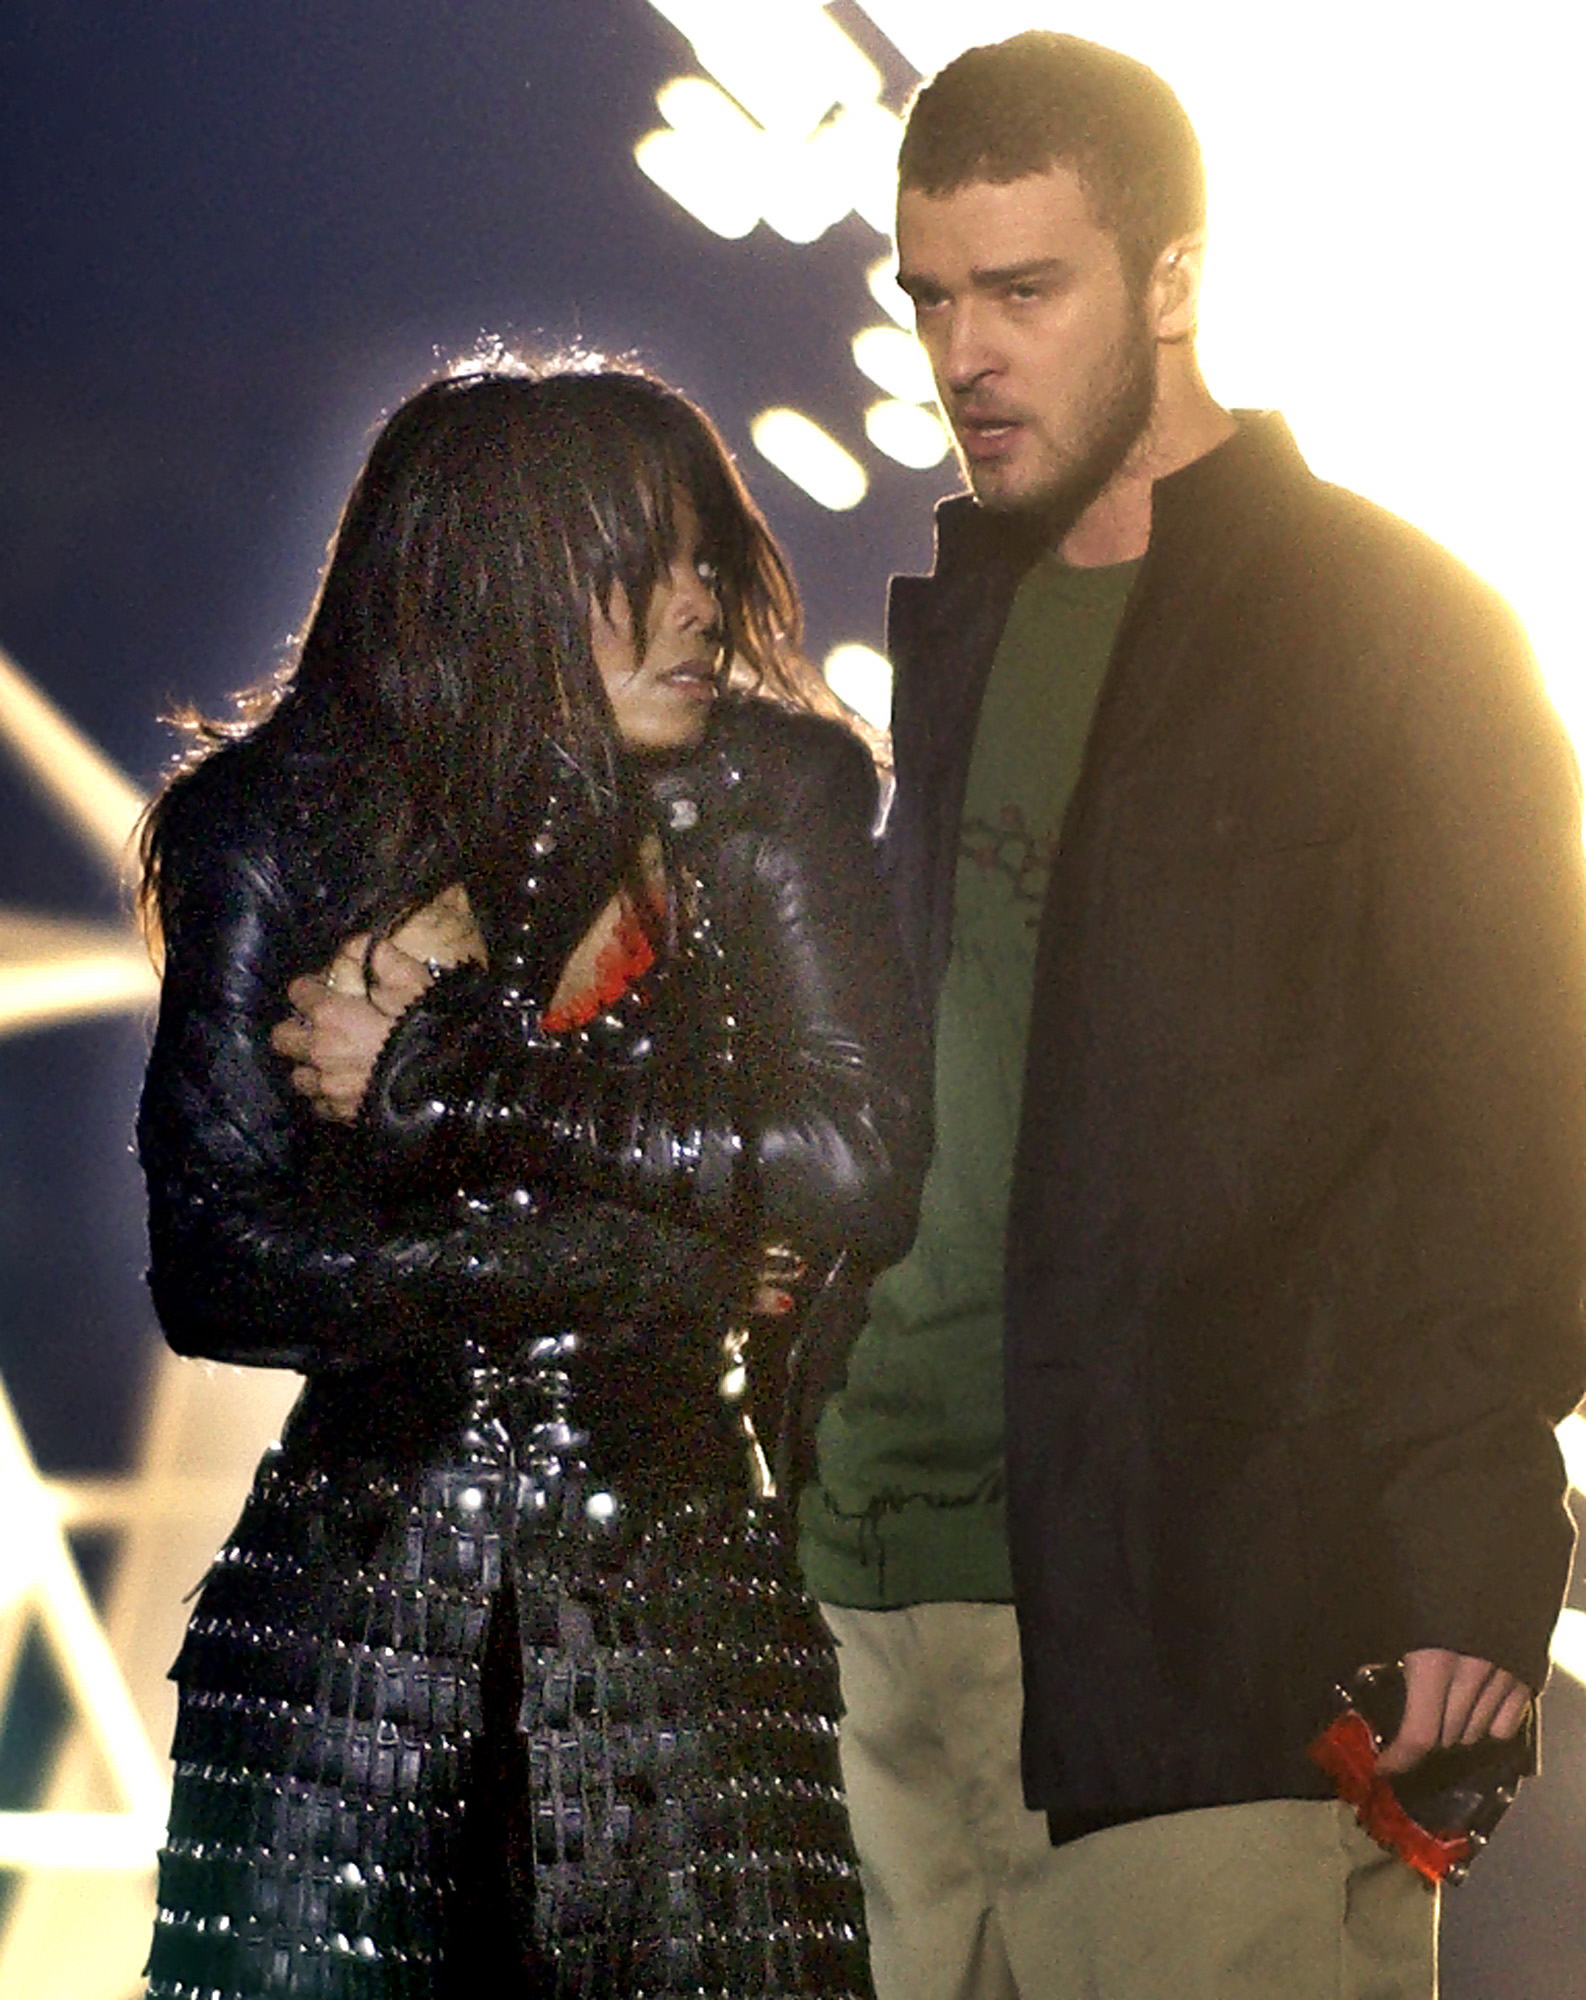 "Singer Janet Jackson covers her breast as Justin Timberlake holds part of her costume after her outfit came undone during a number during the halftime show of Super Bowl XXXVIII in Houston, in this Feb. 1, 2004 file photo. On Wednesday, Sept. 22, 2004, the Federal Communications Commission fined CBS a record $550,000 for Jackson's ""wardrobe malfunction,"" which exposed the singer's breast during this year's Super Bowl halftime show."